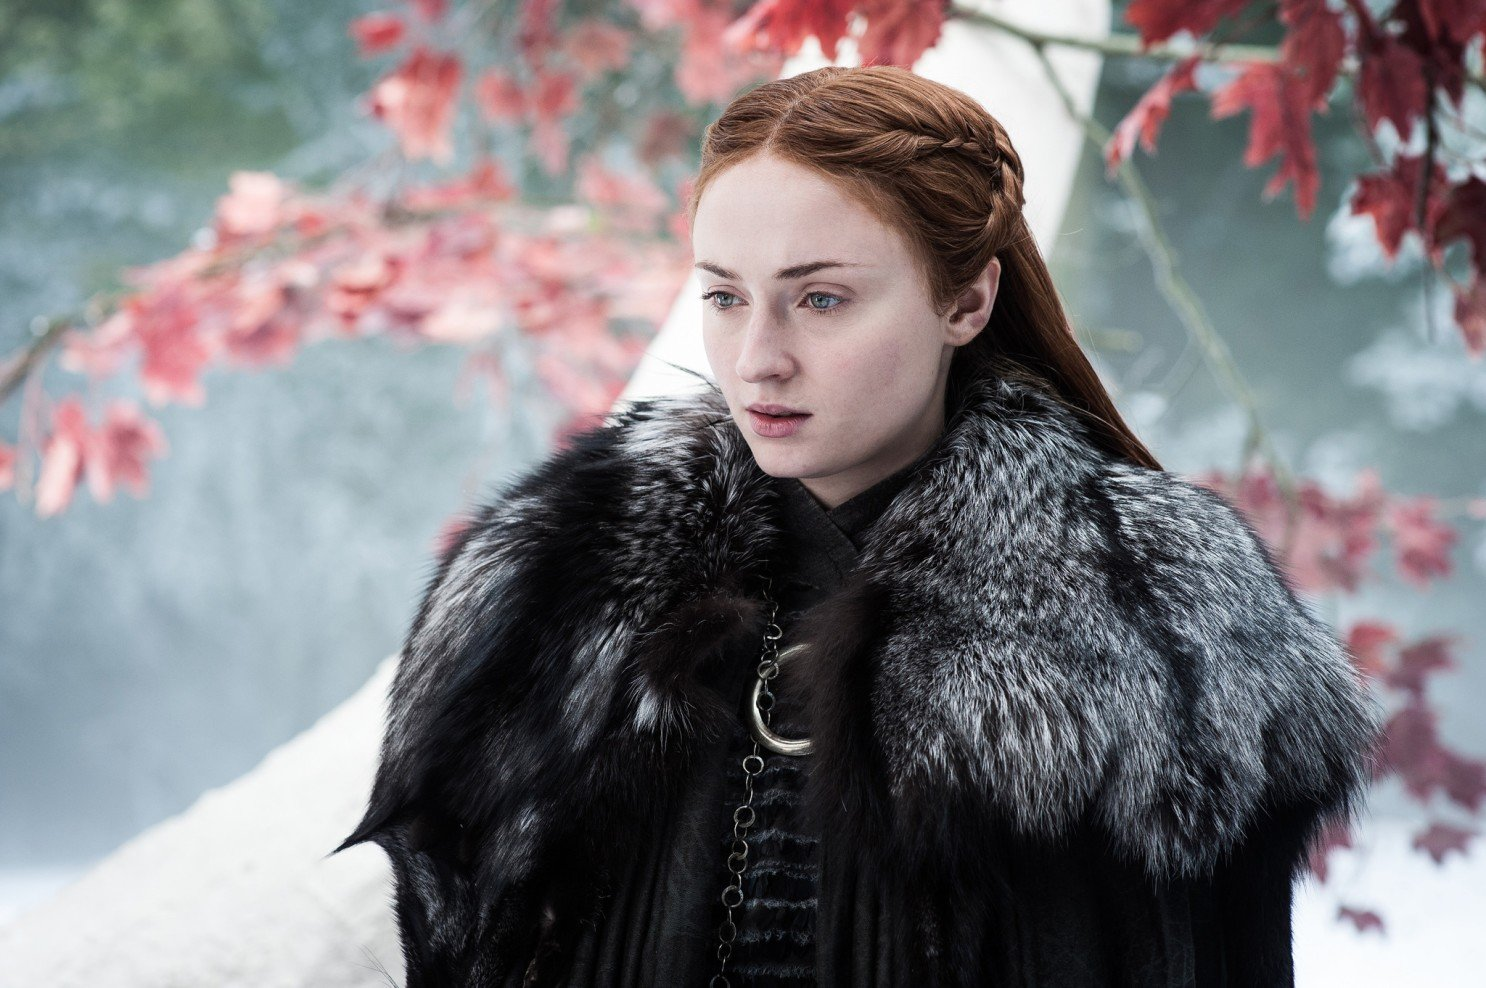 ca times.brightspotcdn 33 Things You Didn't Know About The Game of Thrones Cast